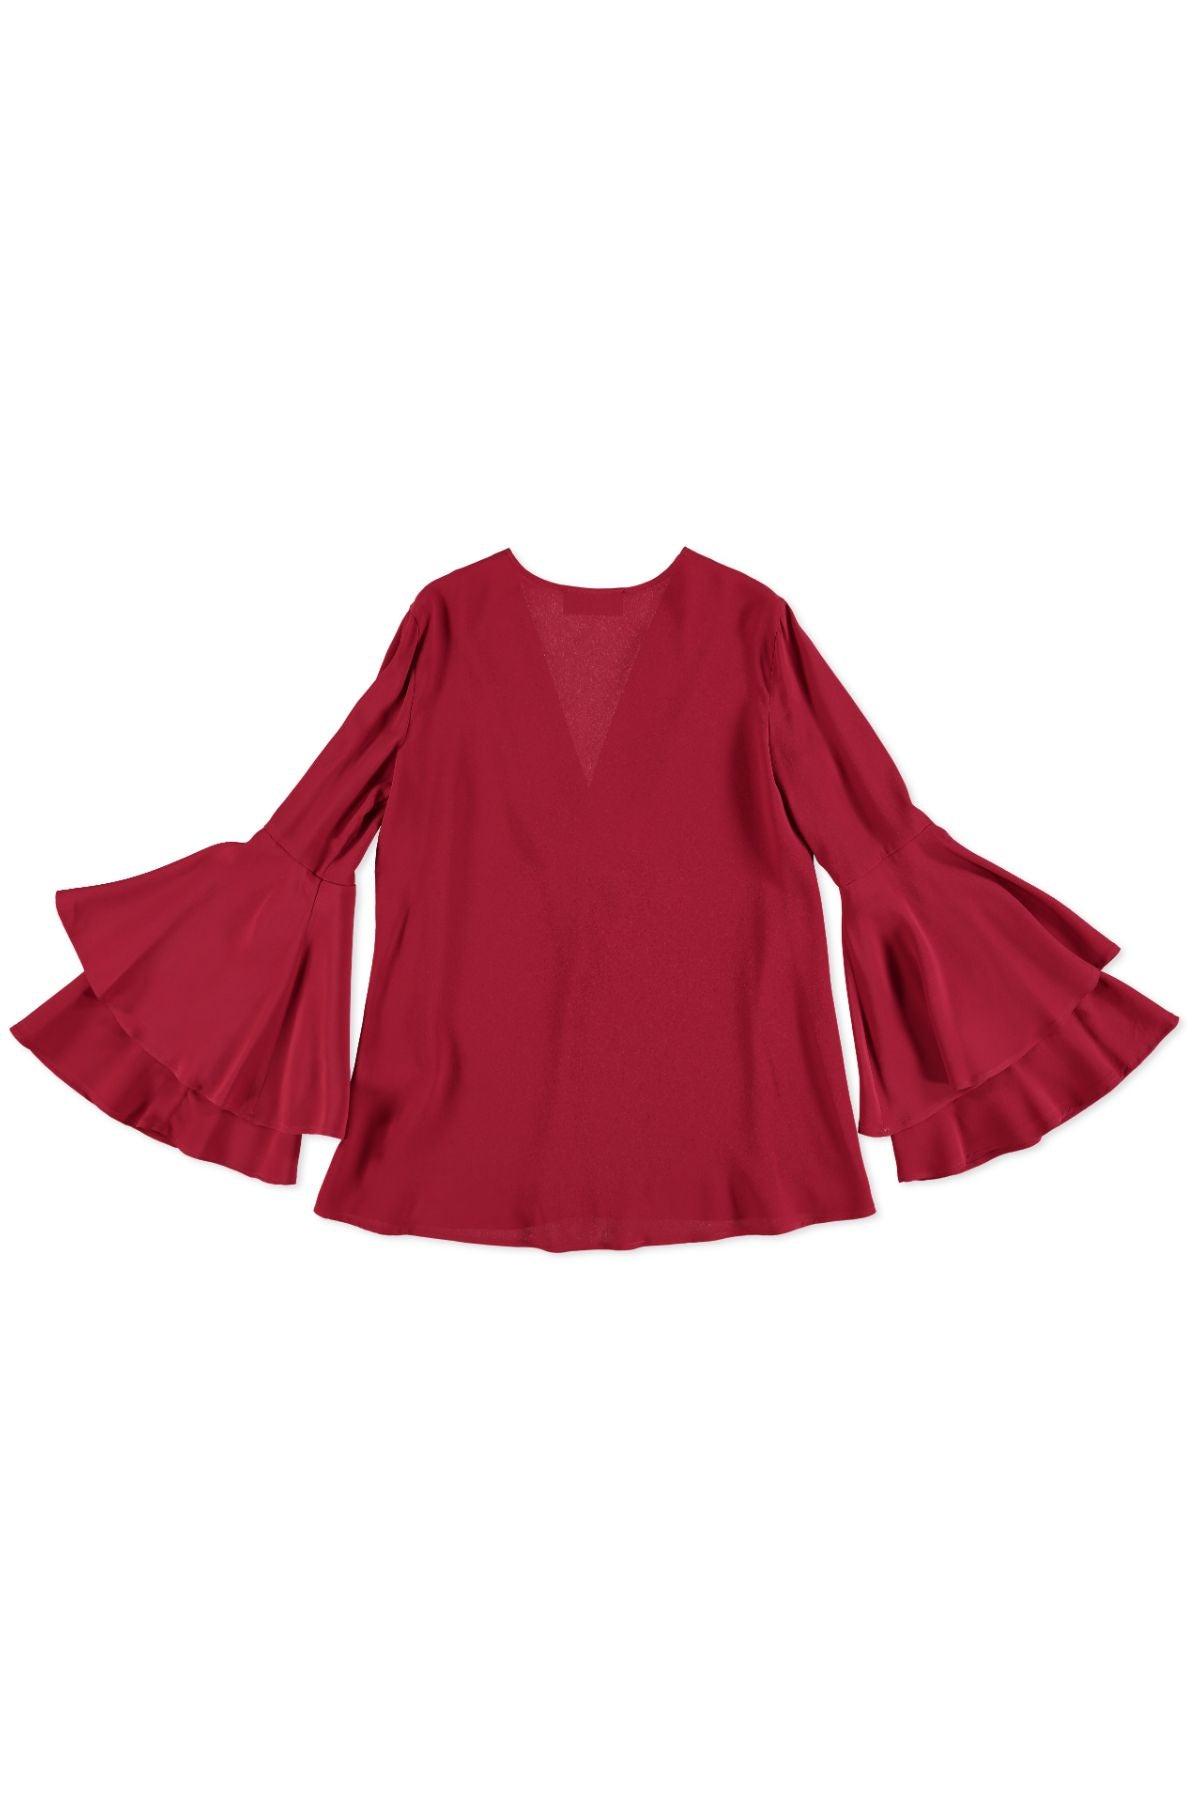 camicia_rosso_carminio_428CM56_front-ki6_who_are_you